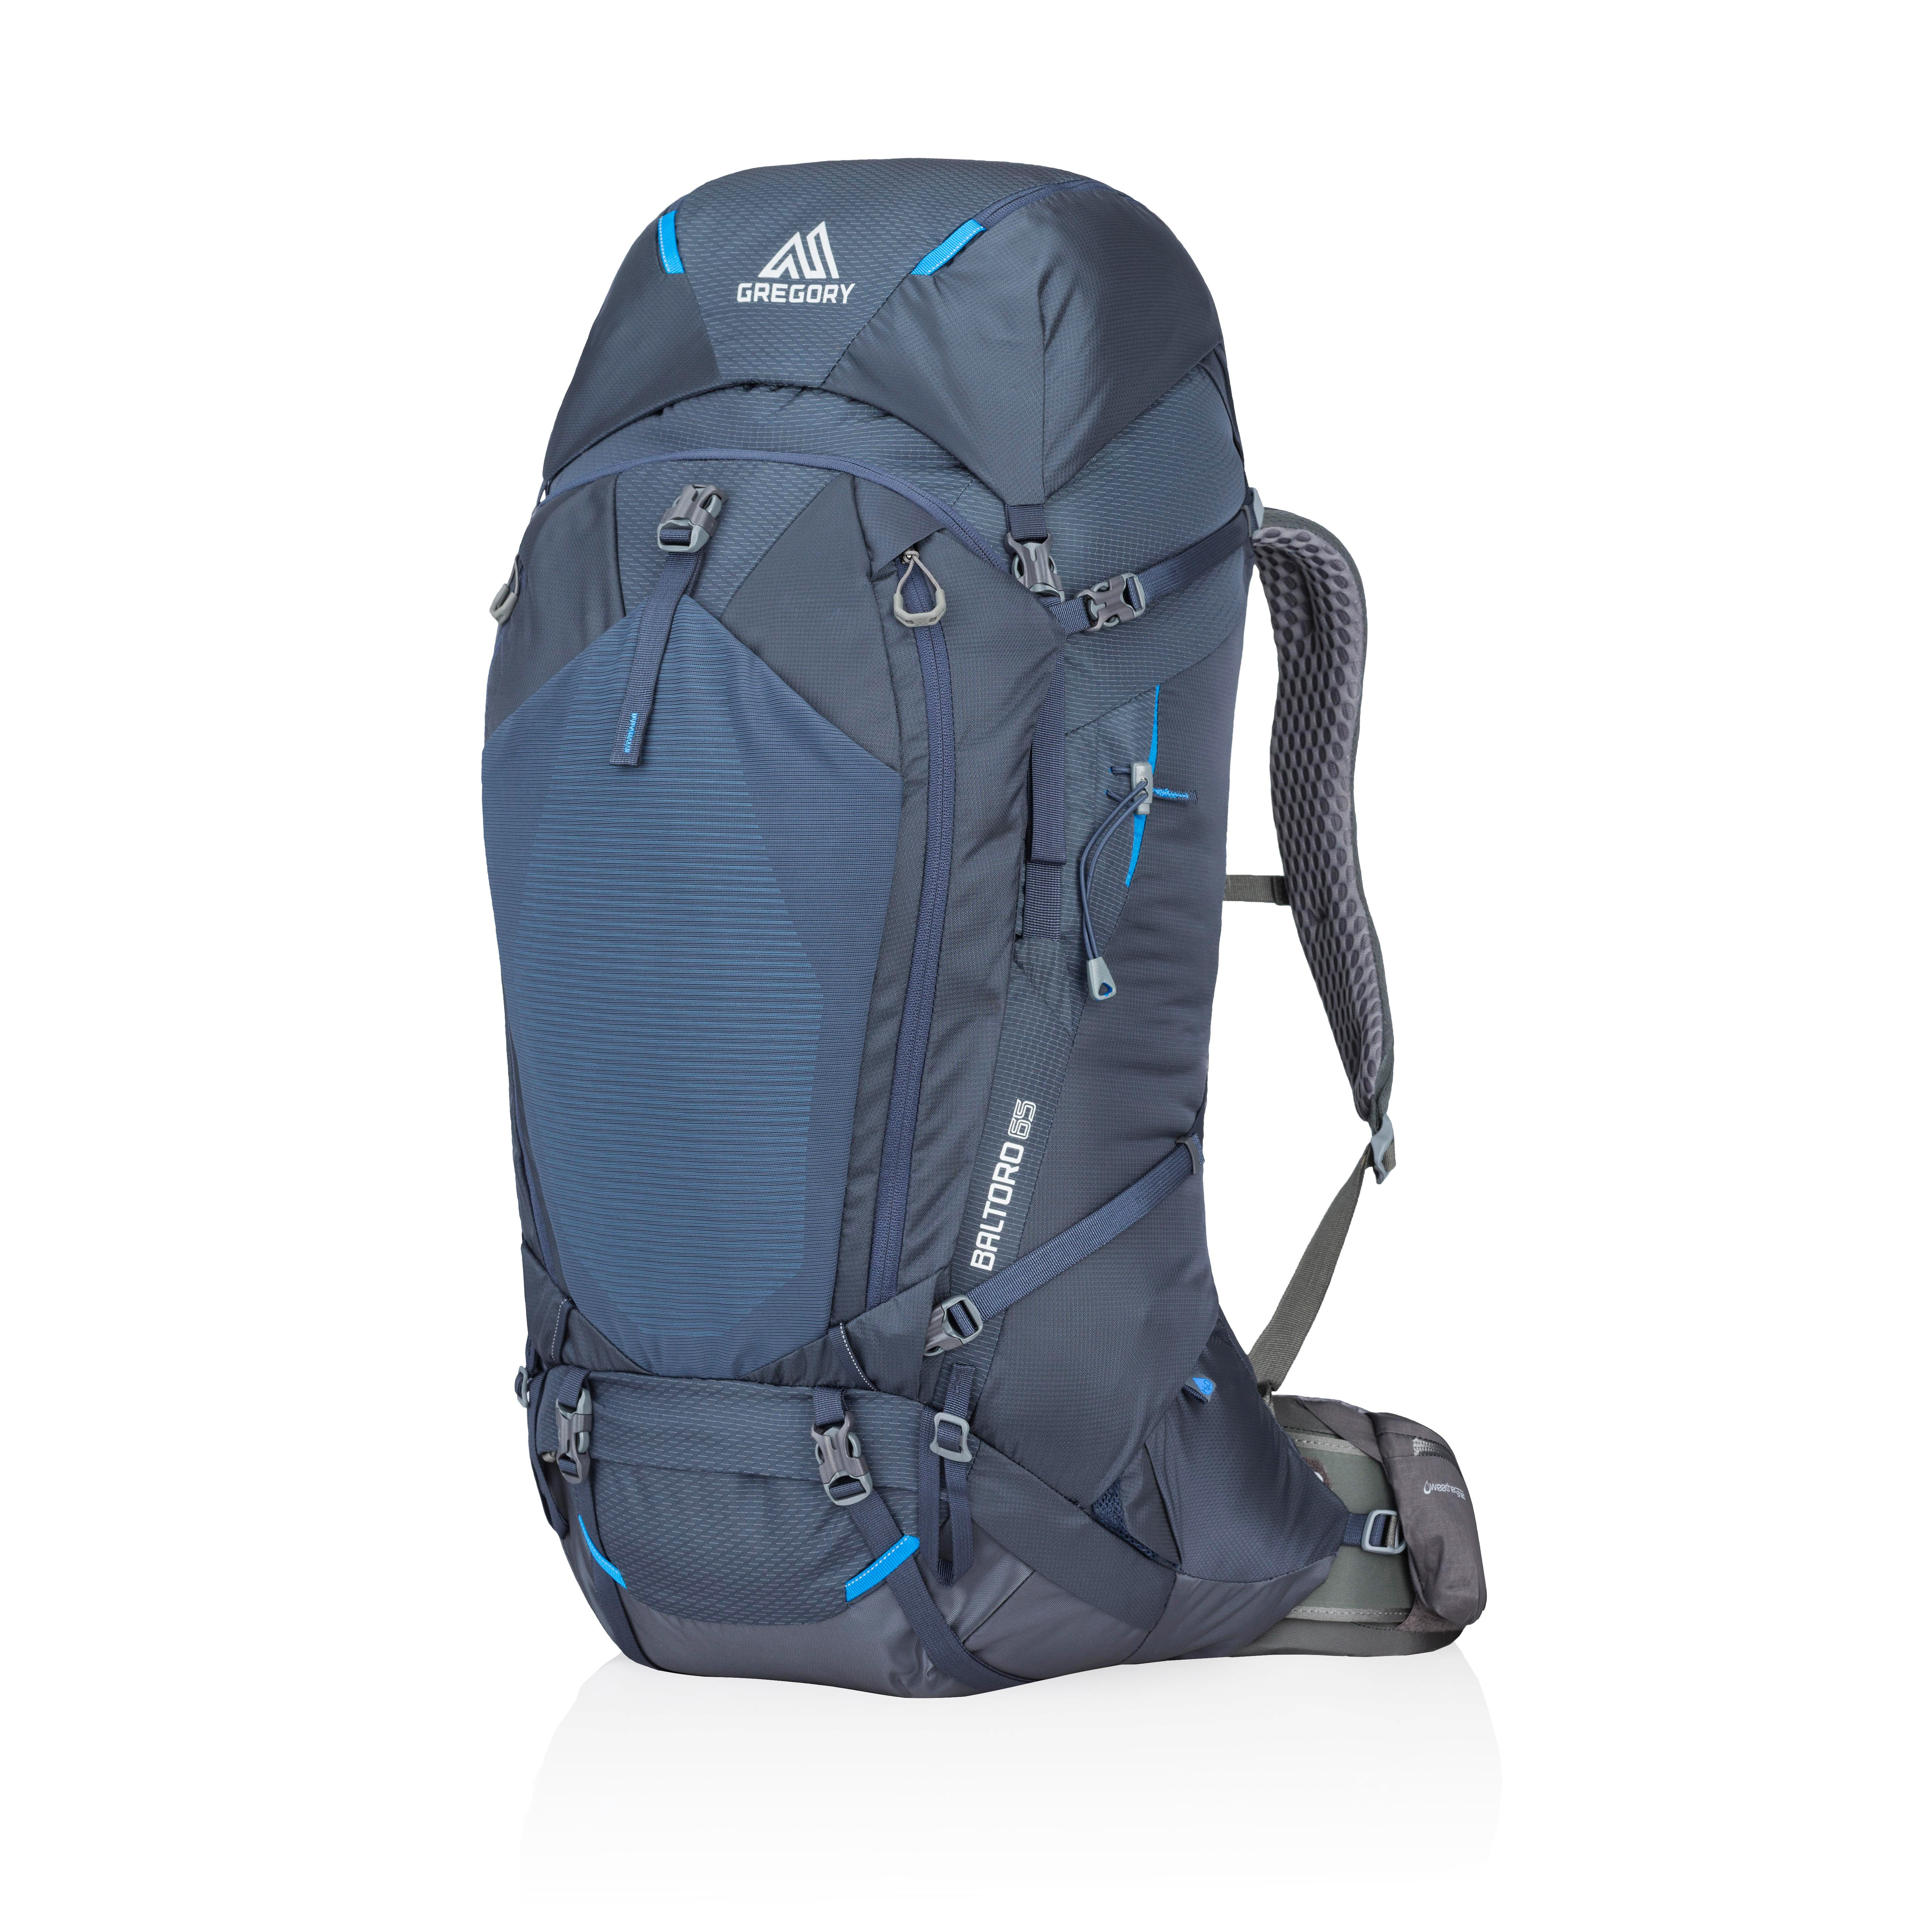 8y6466y8gz gregory mountain products baltoro 65 0 original